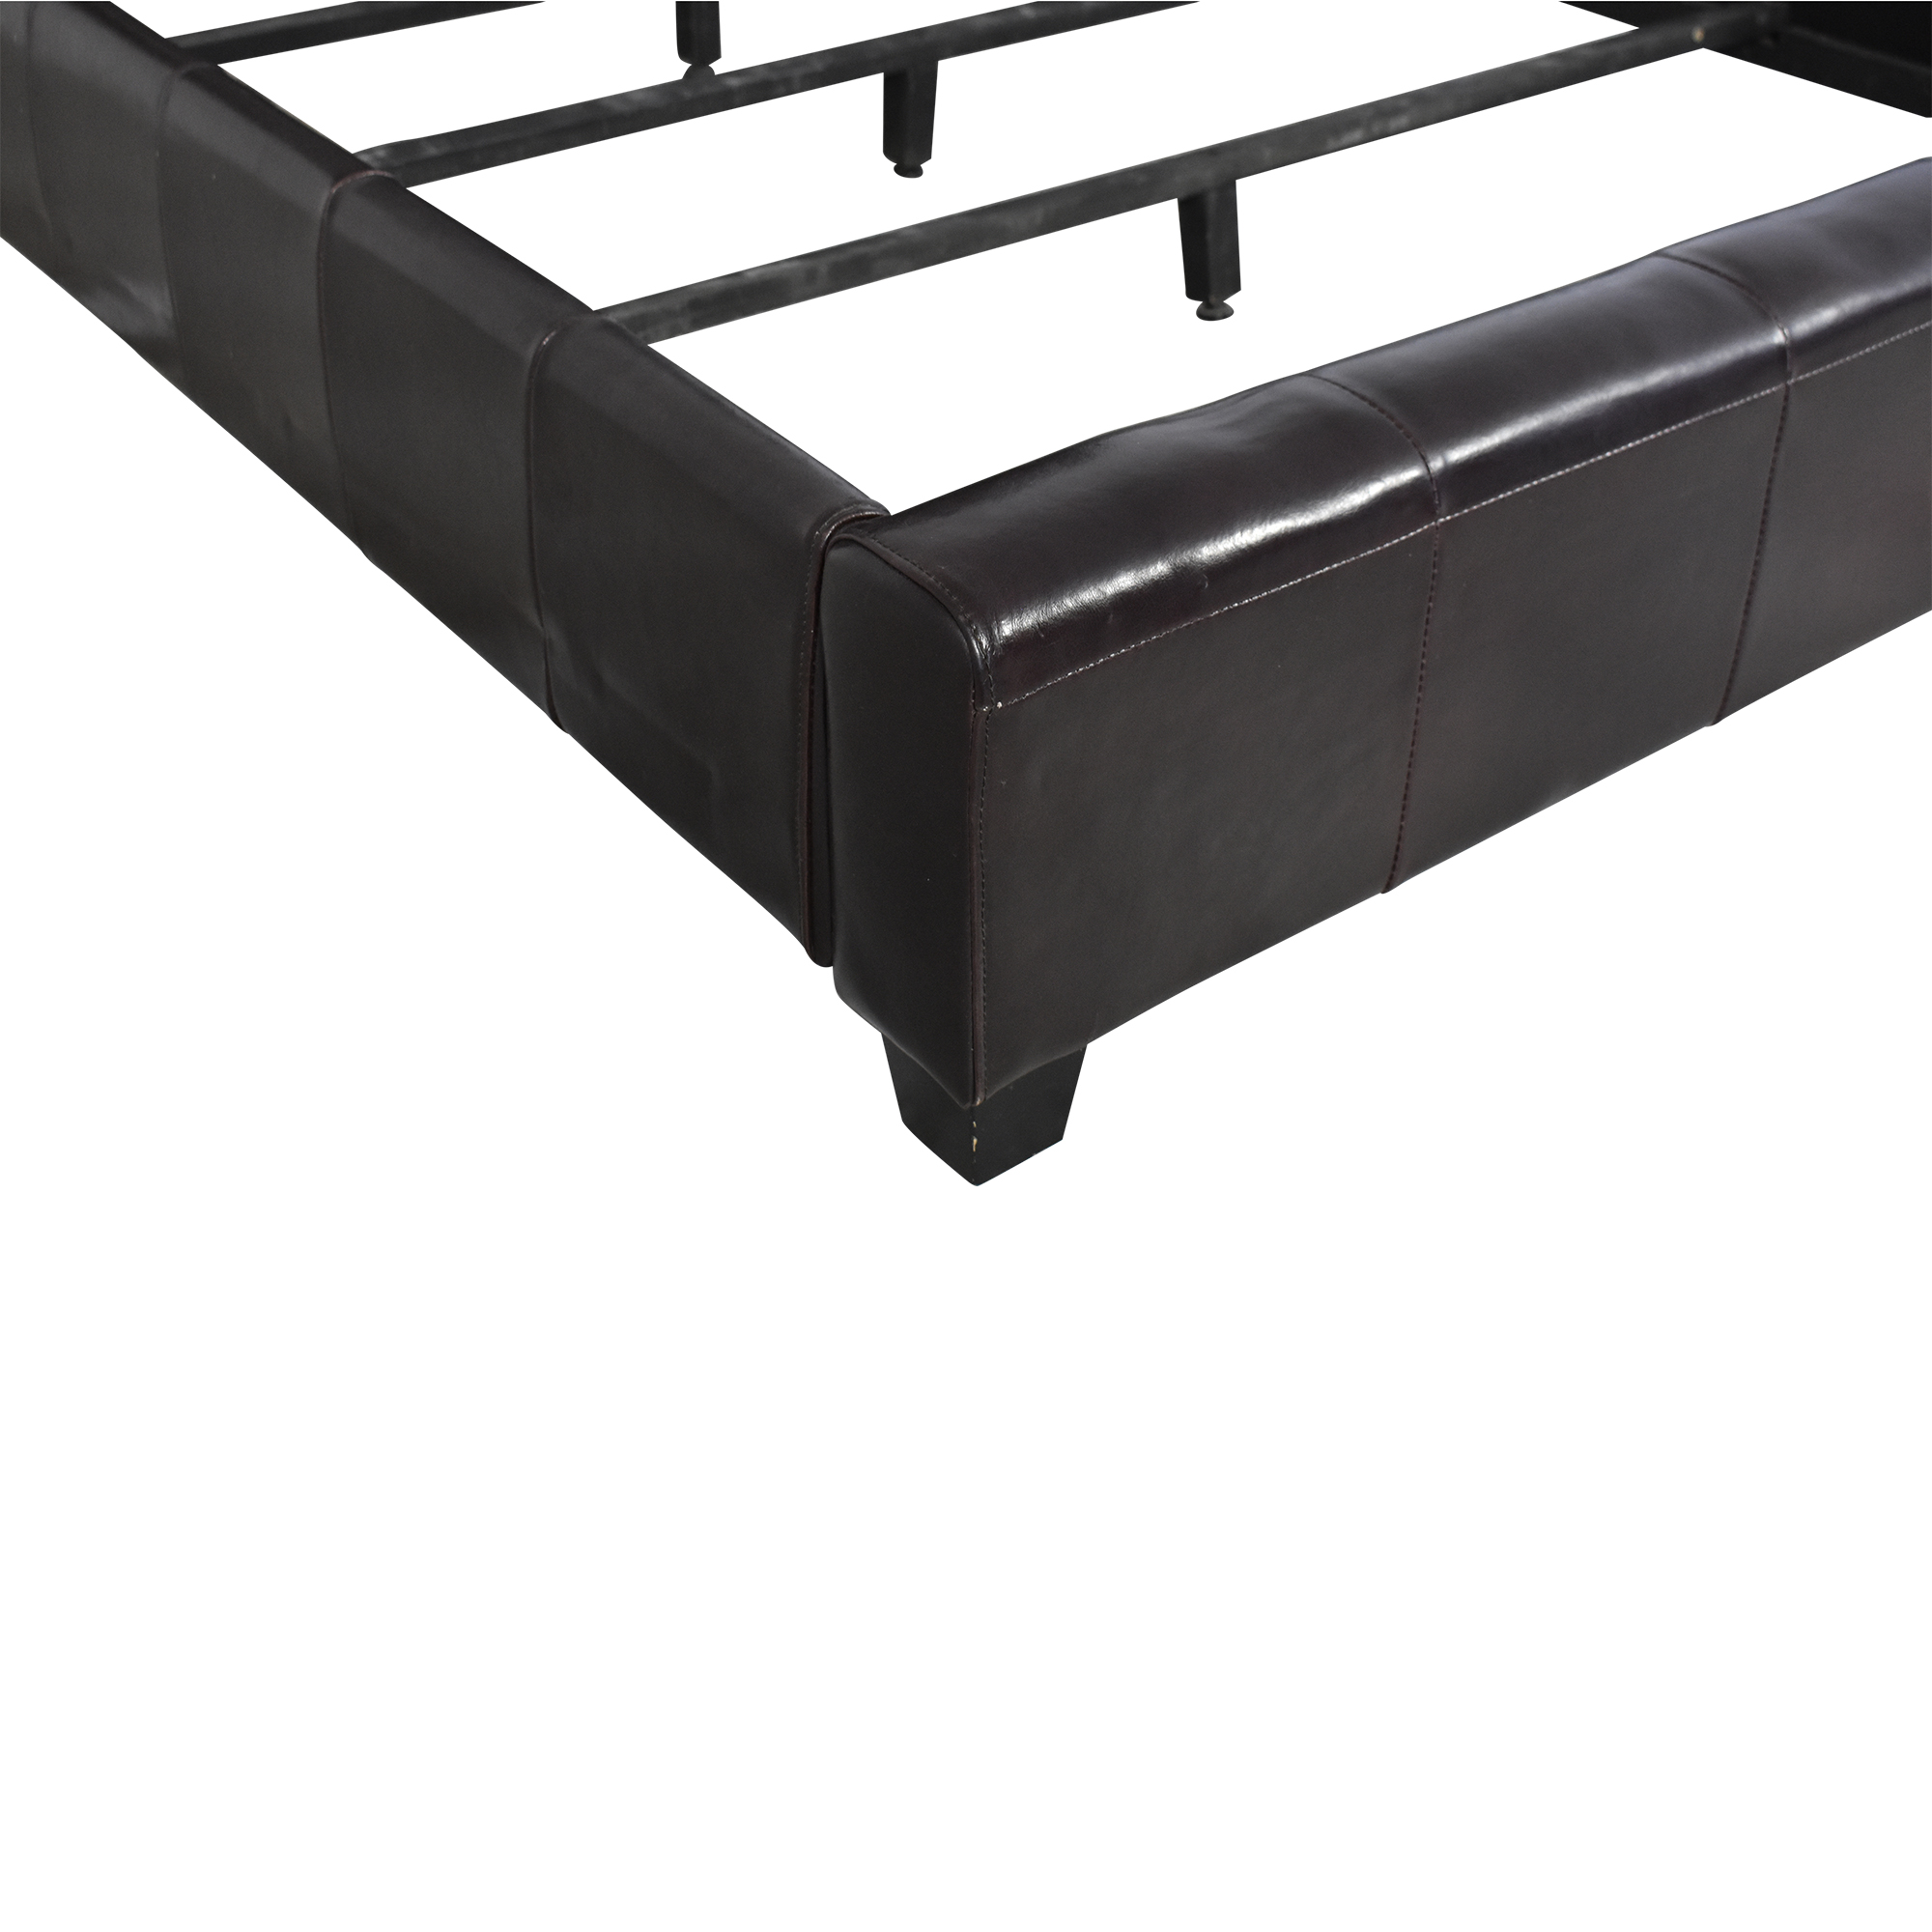 Macy's Macy's Queen Bed Frame ma